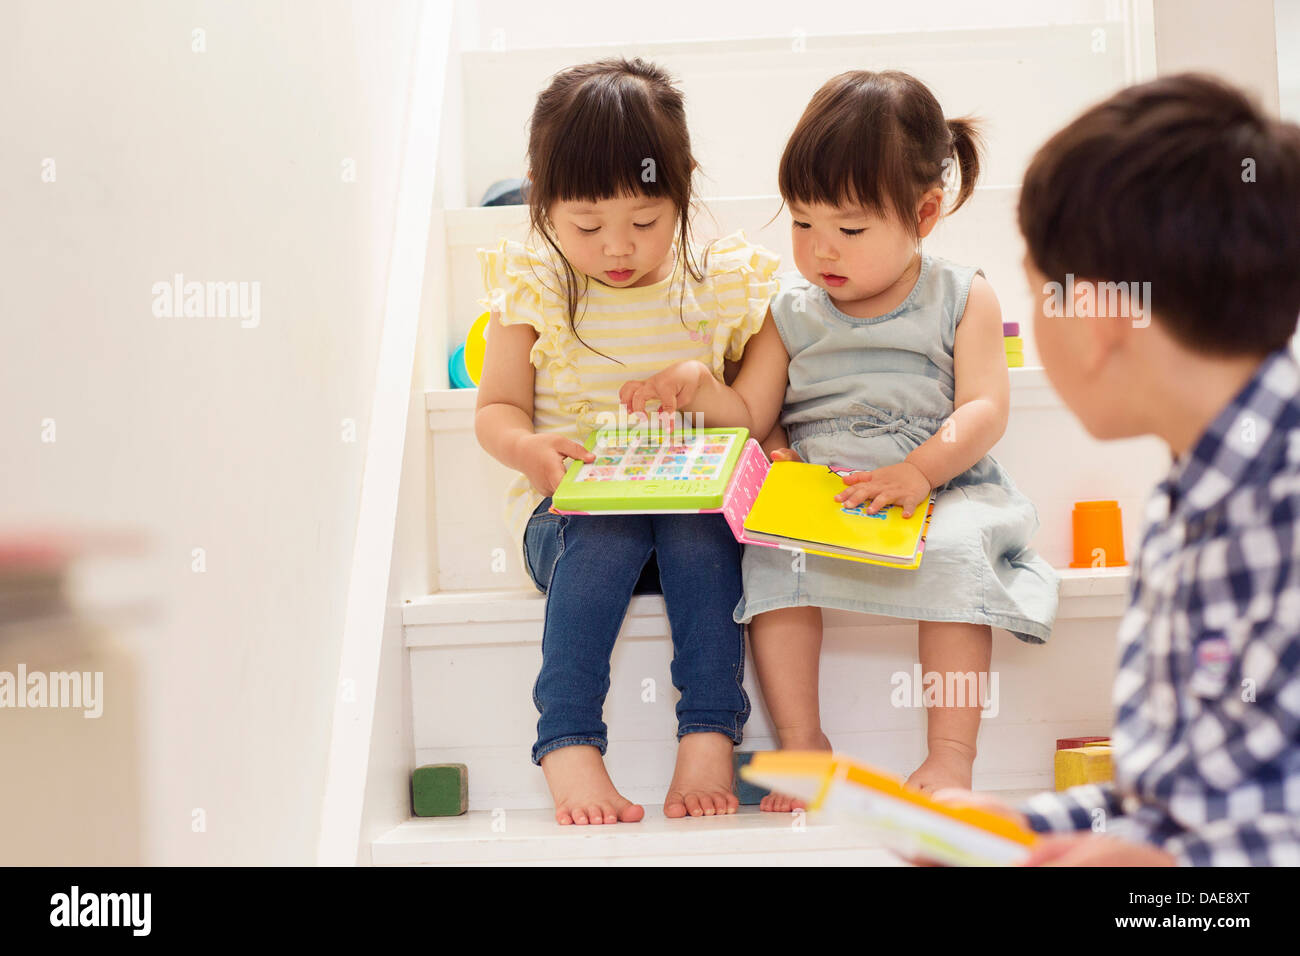 Female toddlers on stairs with game book - Stock Image